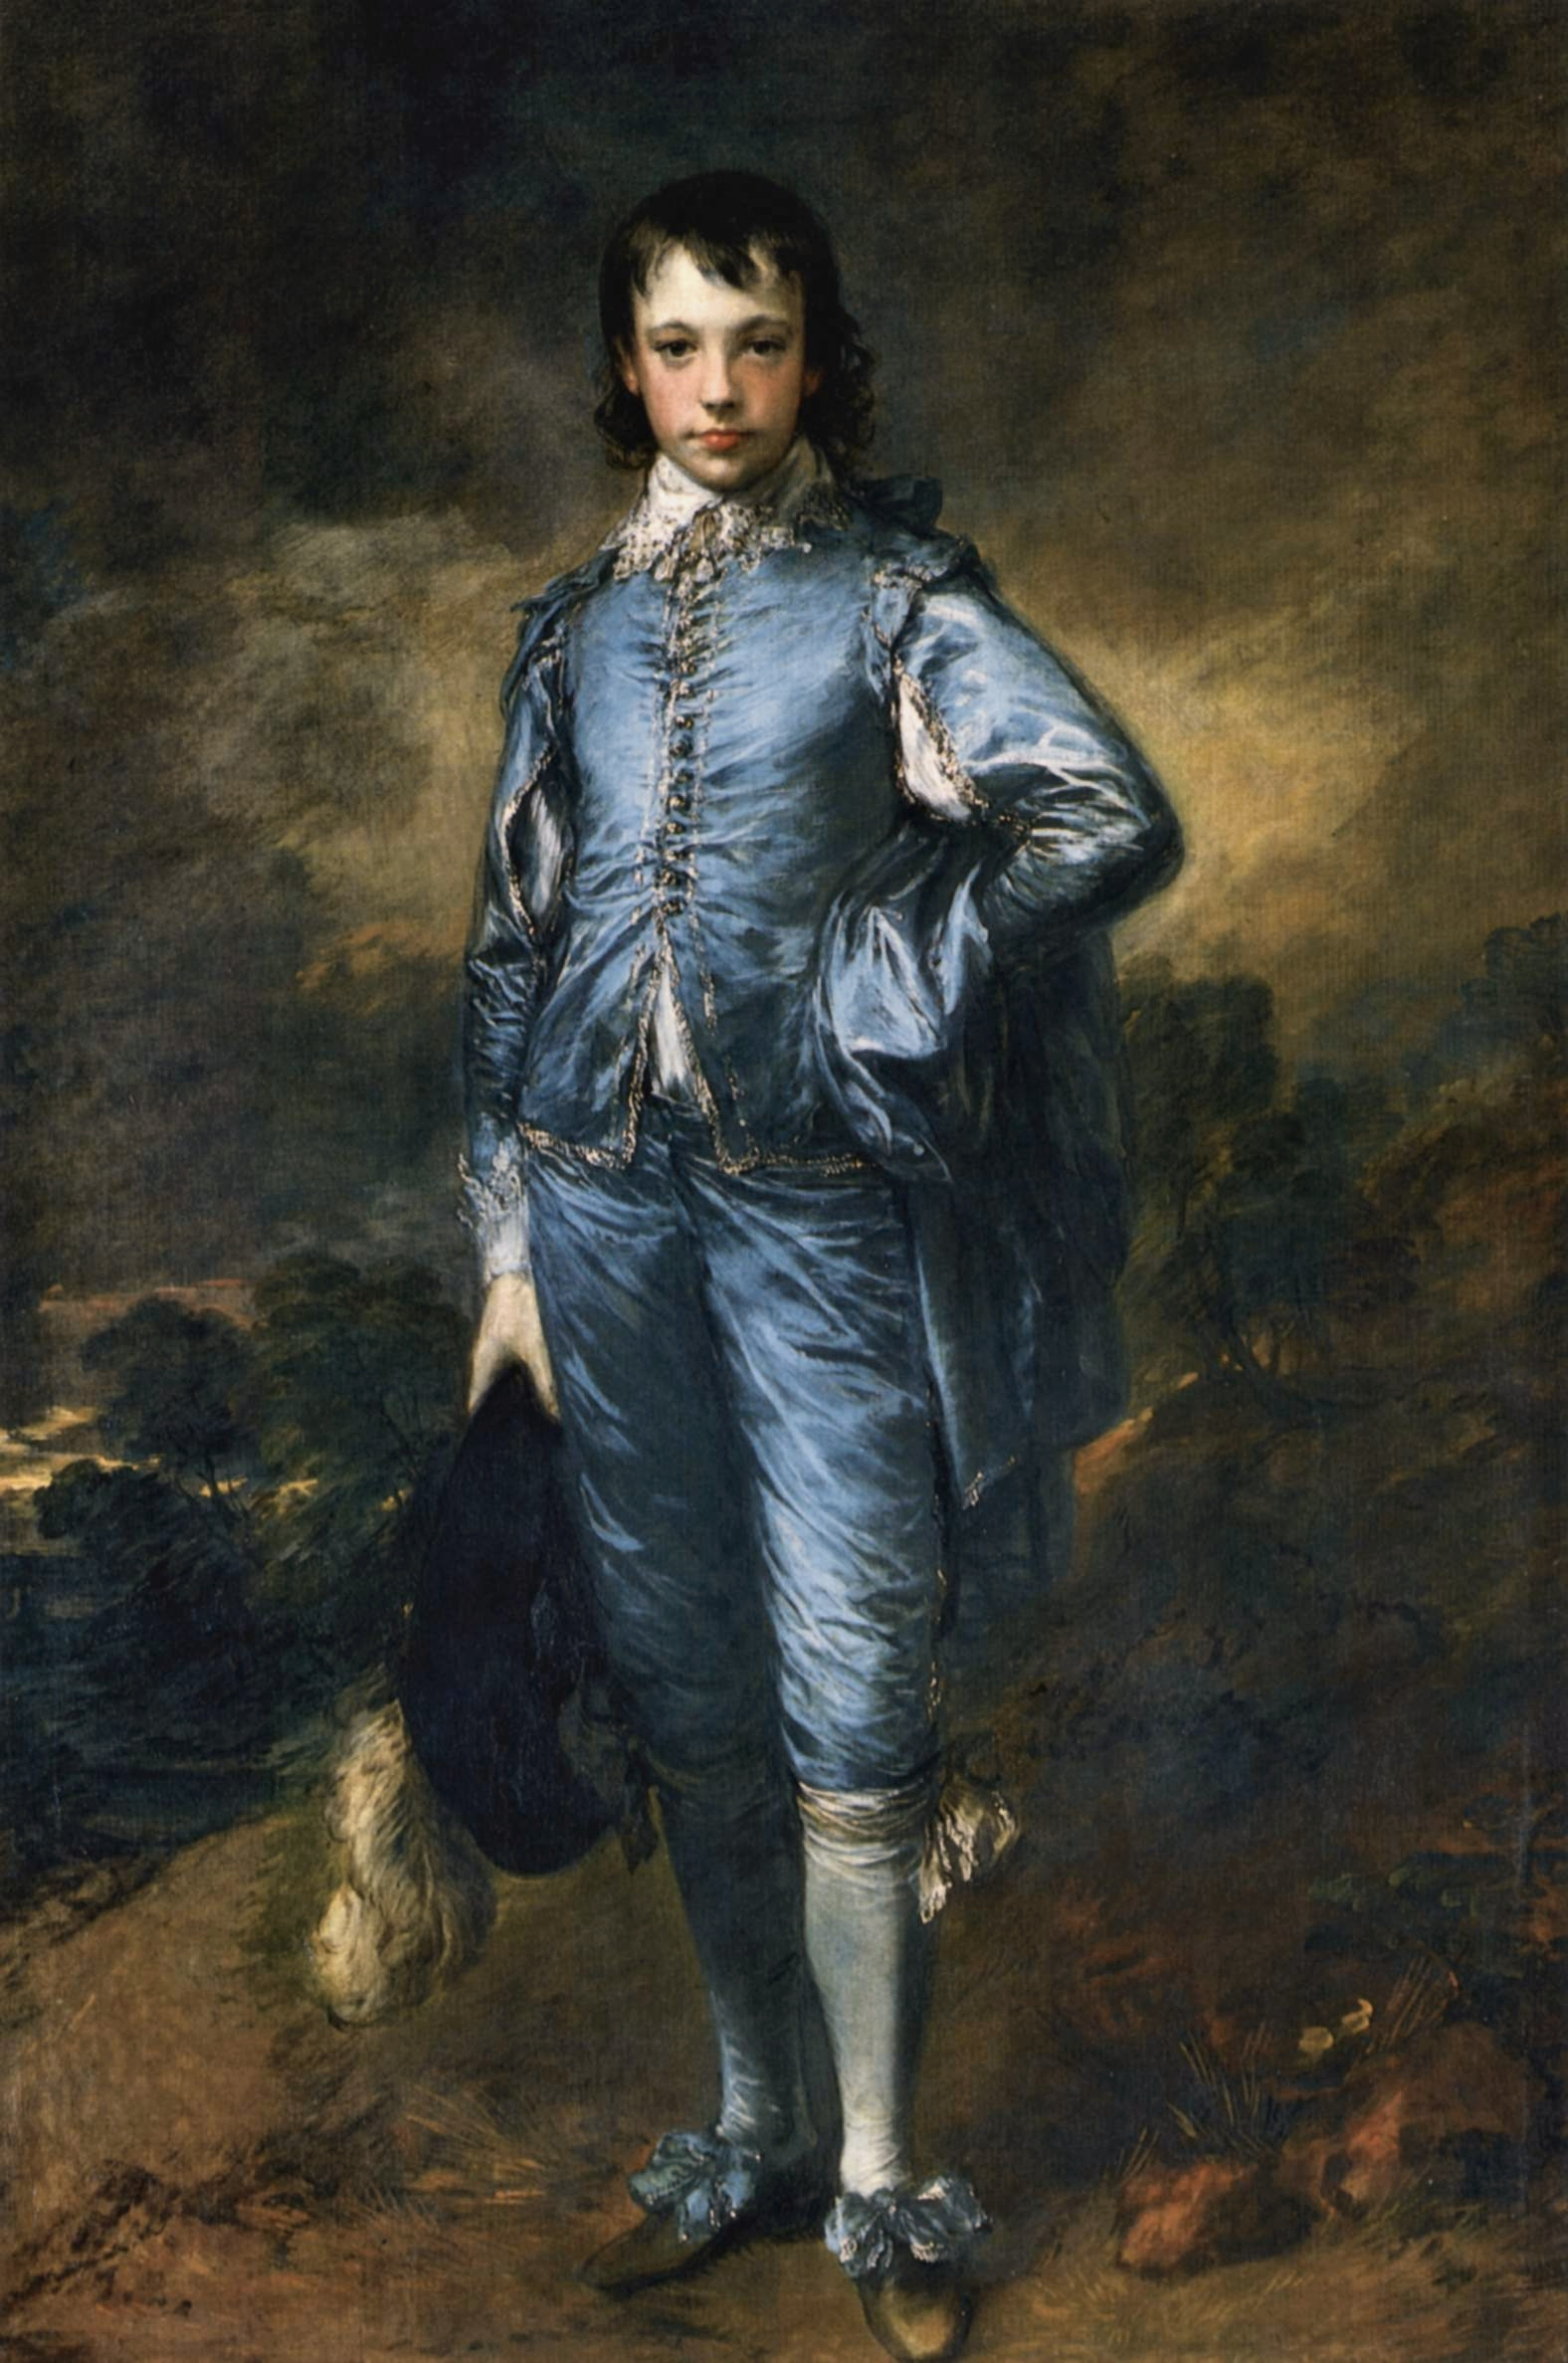 thomas-gainsborough-the-blue-boy-the-huntington-library-san-